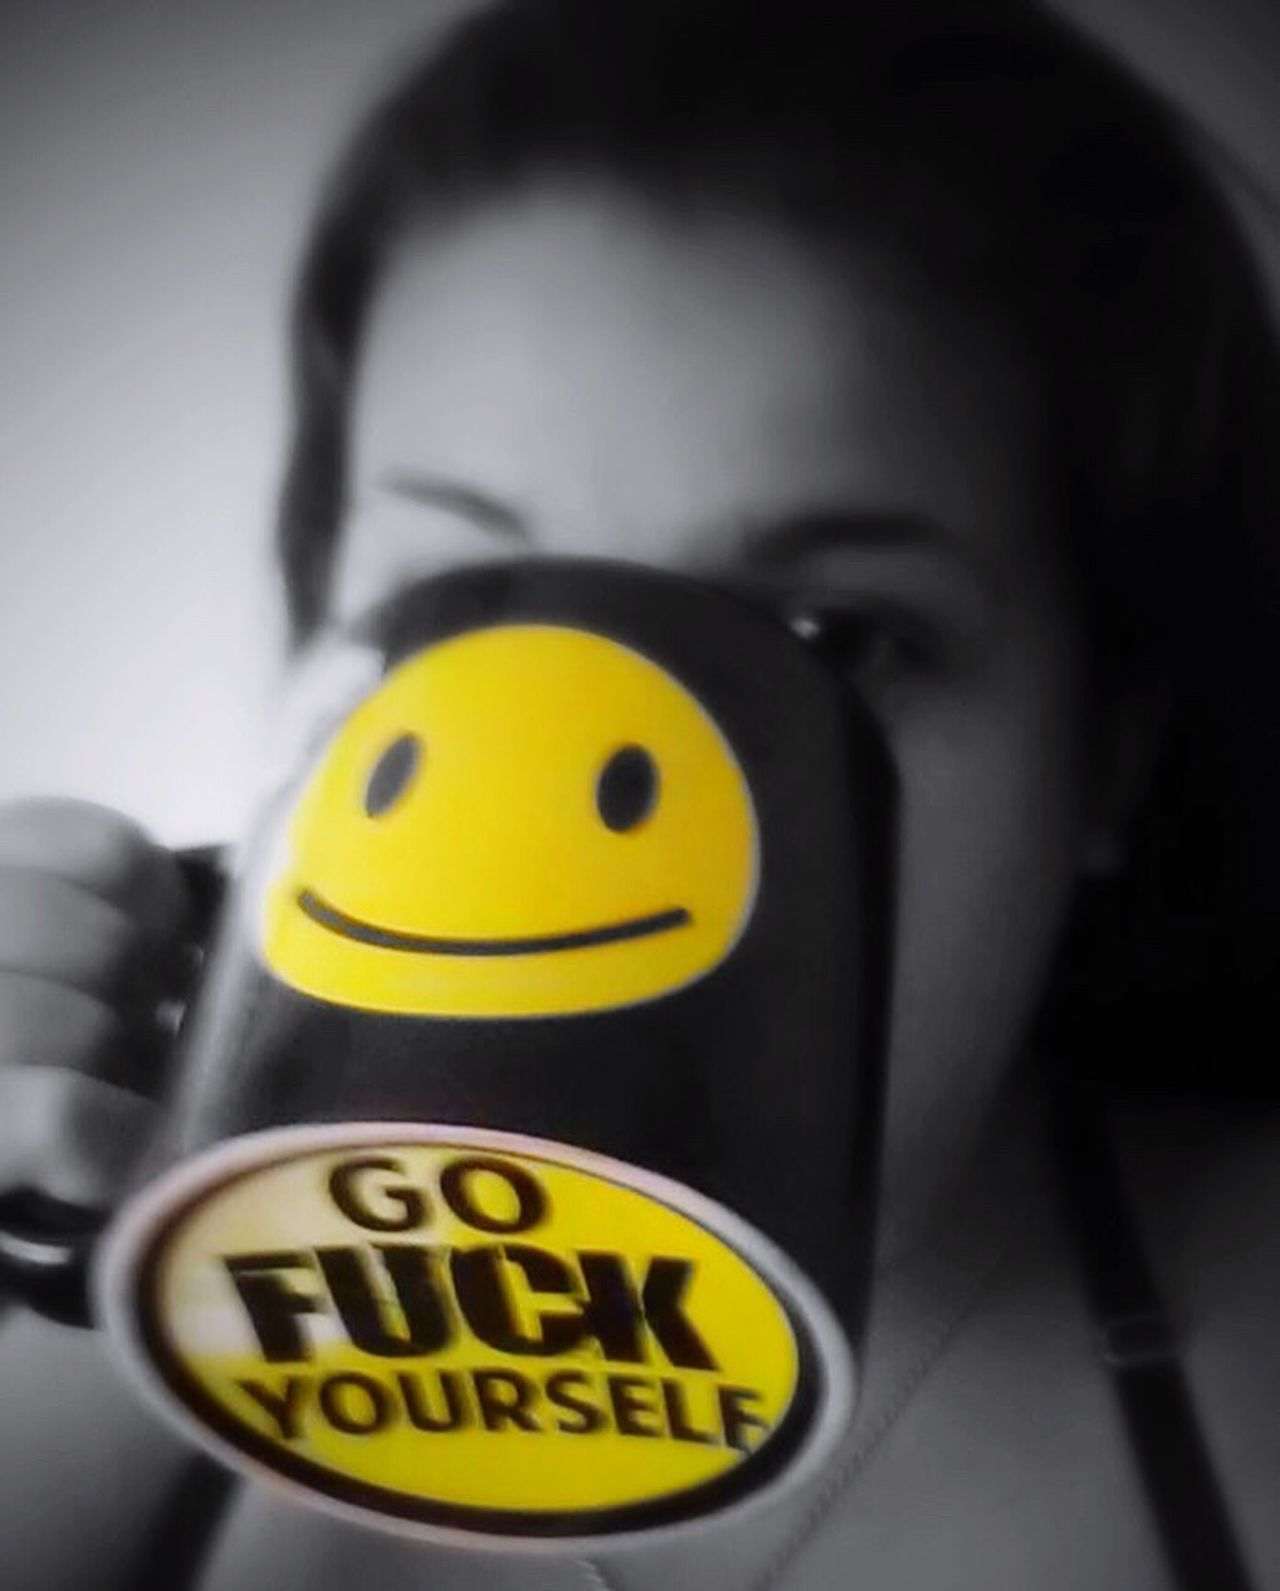 Yellow Western Script Indoors  Text Front View Focus On Foreground Symbol Smiley Coffee Good Morning Good Morning! Good Morning World! Self Self Portrait Selfies Drinking Profanity Humor Black And White Yellow Color Female Model Eye Em Viral Beverage Bed Head